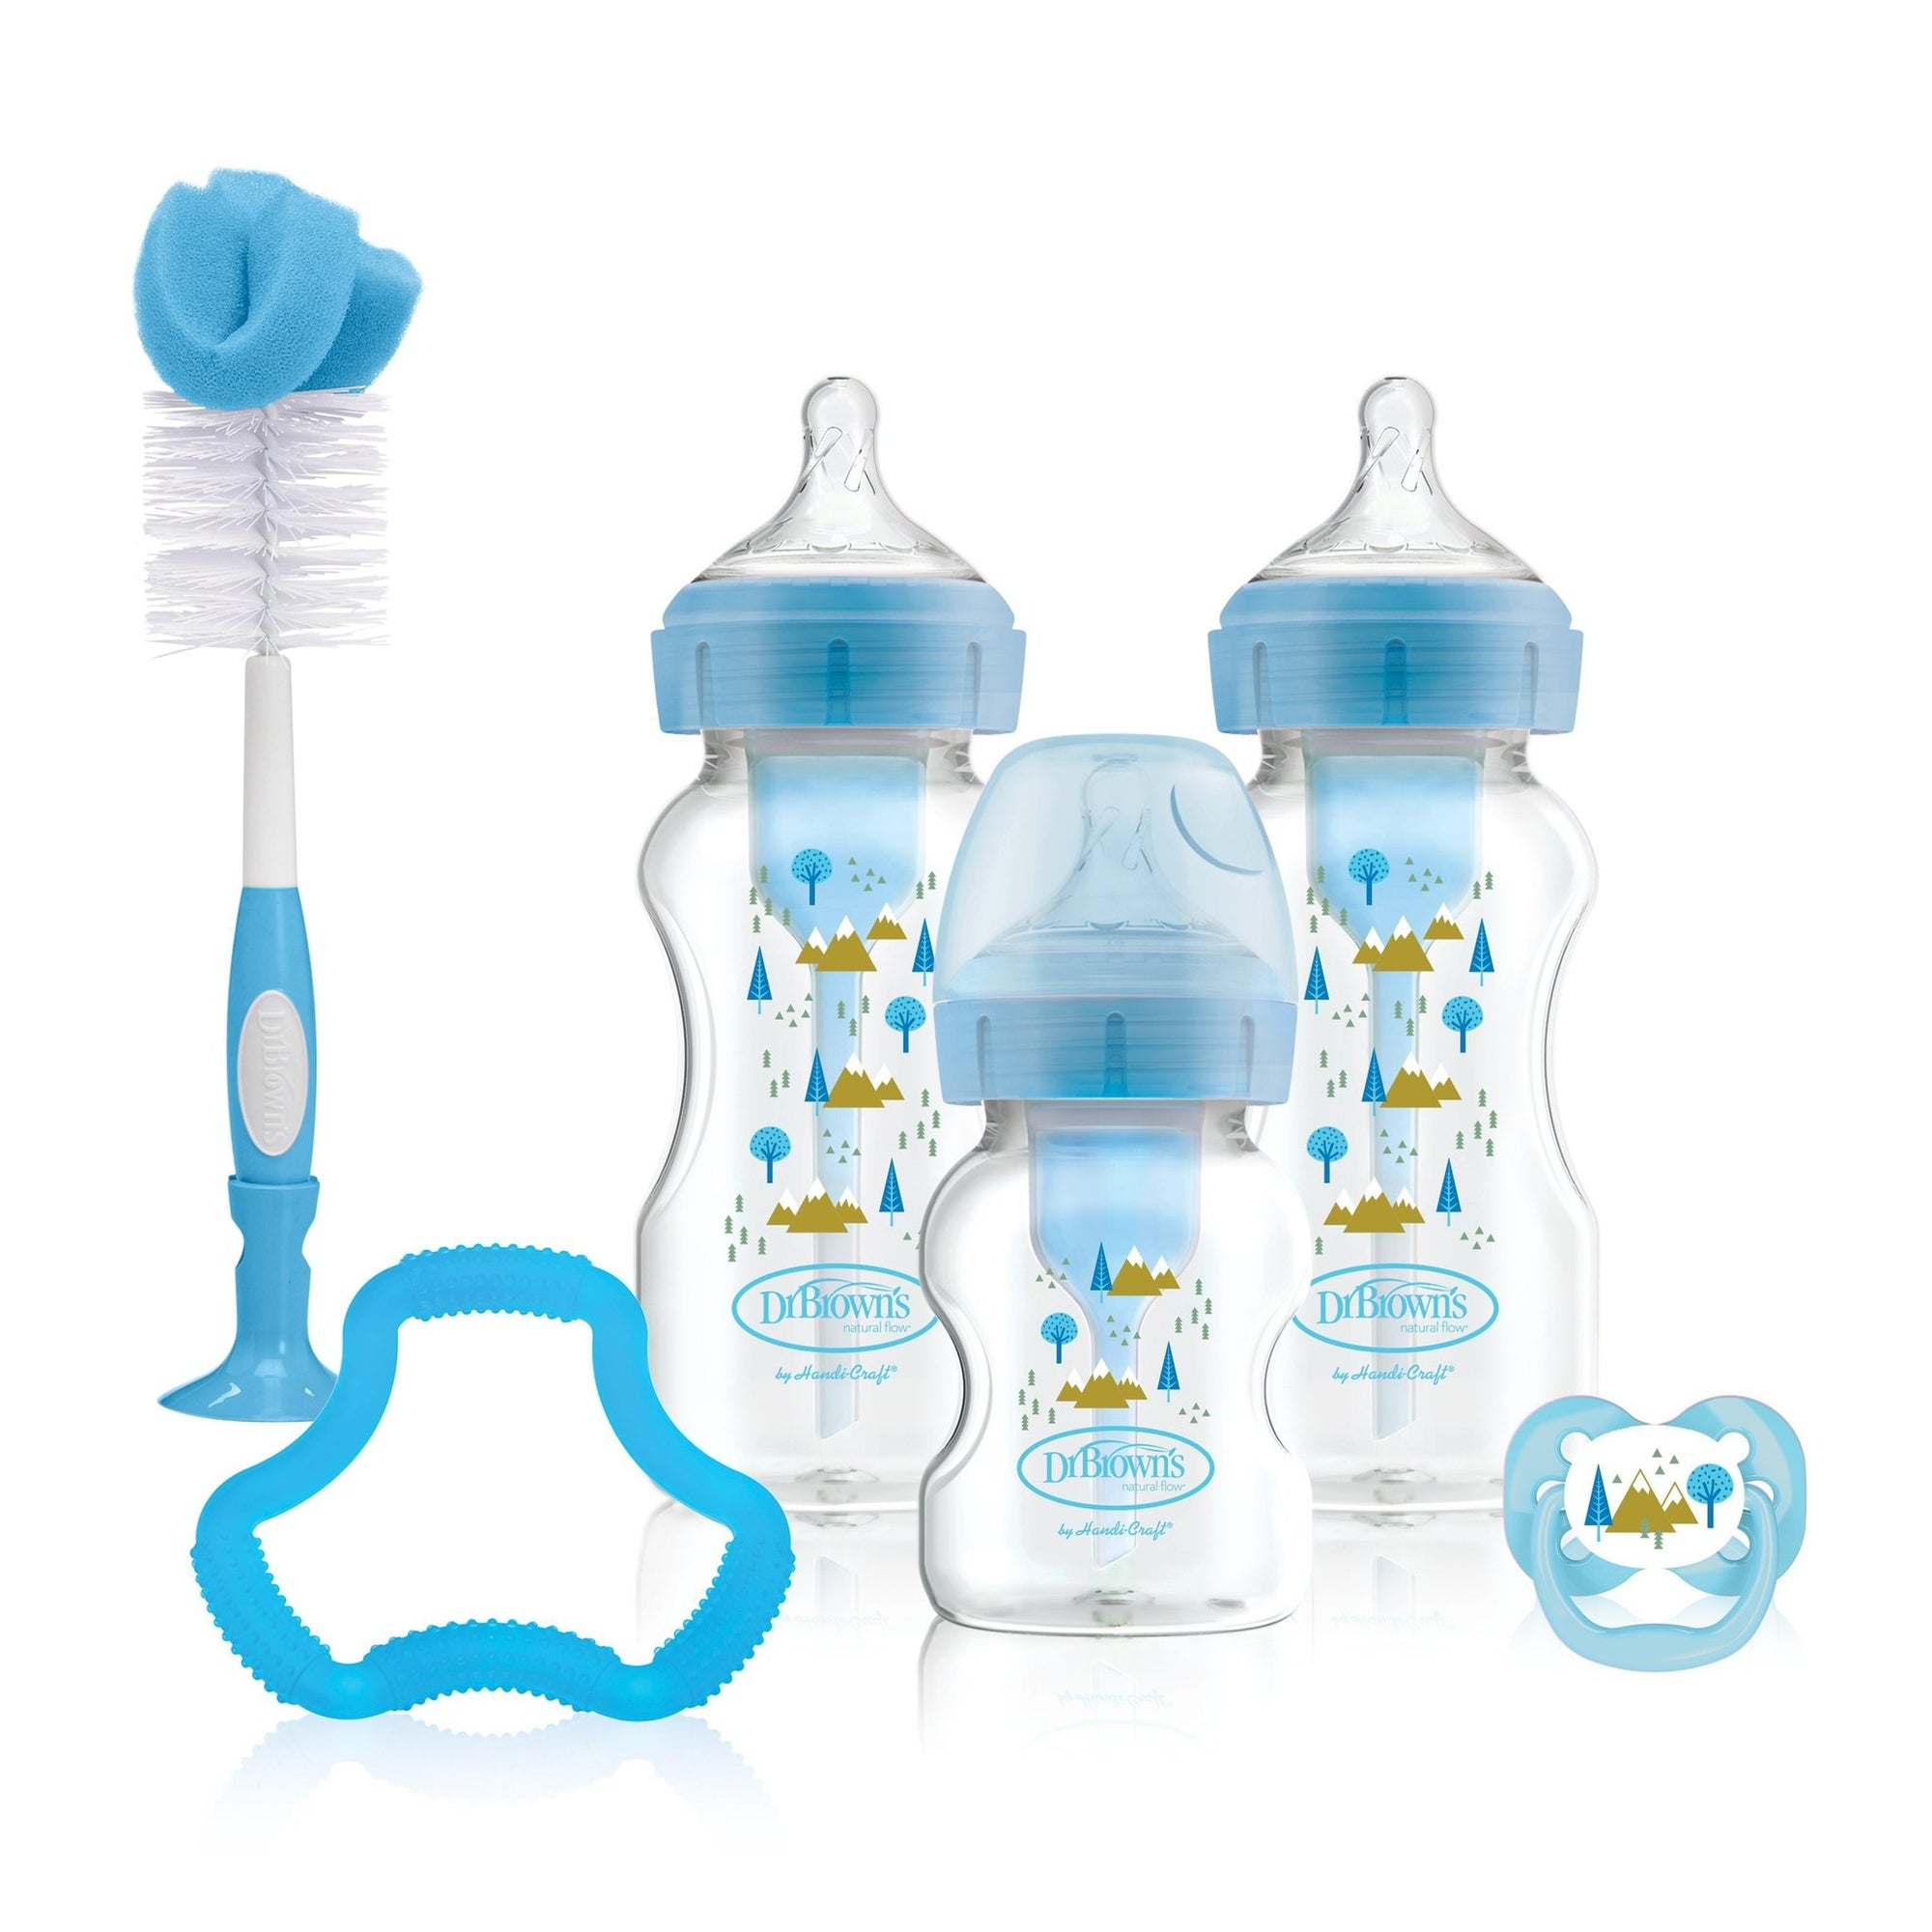 Dr. Brown's Options+ Gift Set-Feeding Starter and Gift Sets-Mother and Baby Shop Kenya's #1 Online Baby Shop